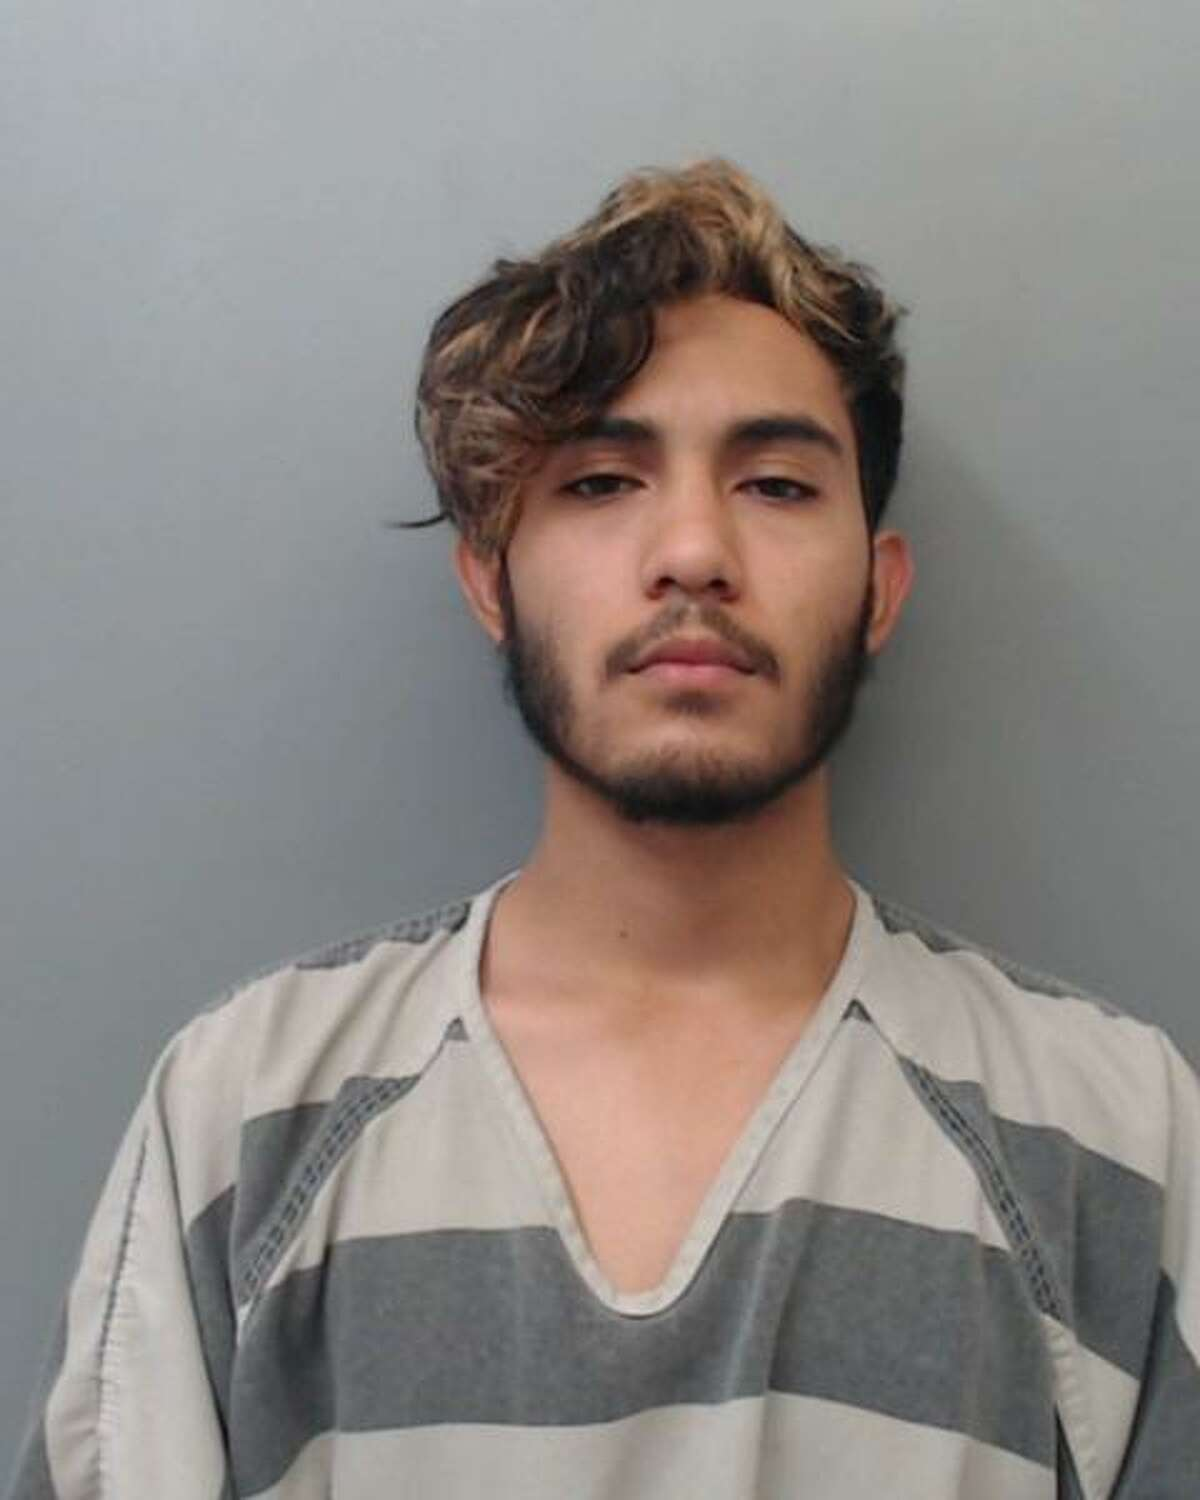 Javier Arreola, 18, was arrested and charged with making a terroristic threat and resisting arrest.